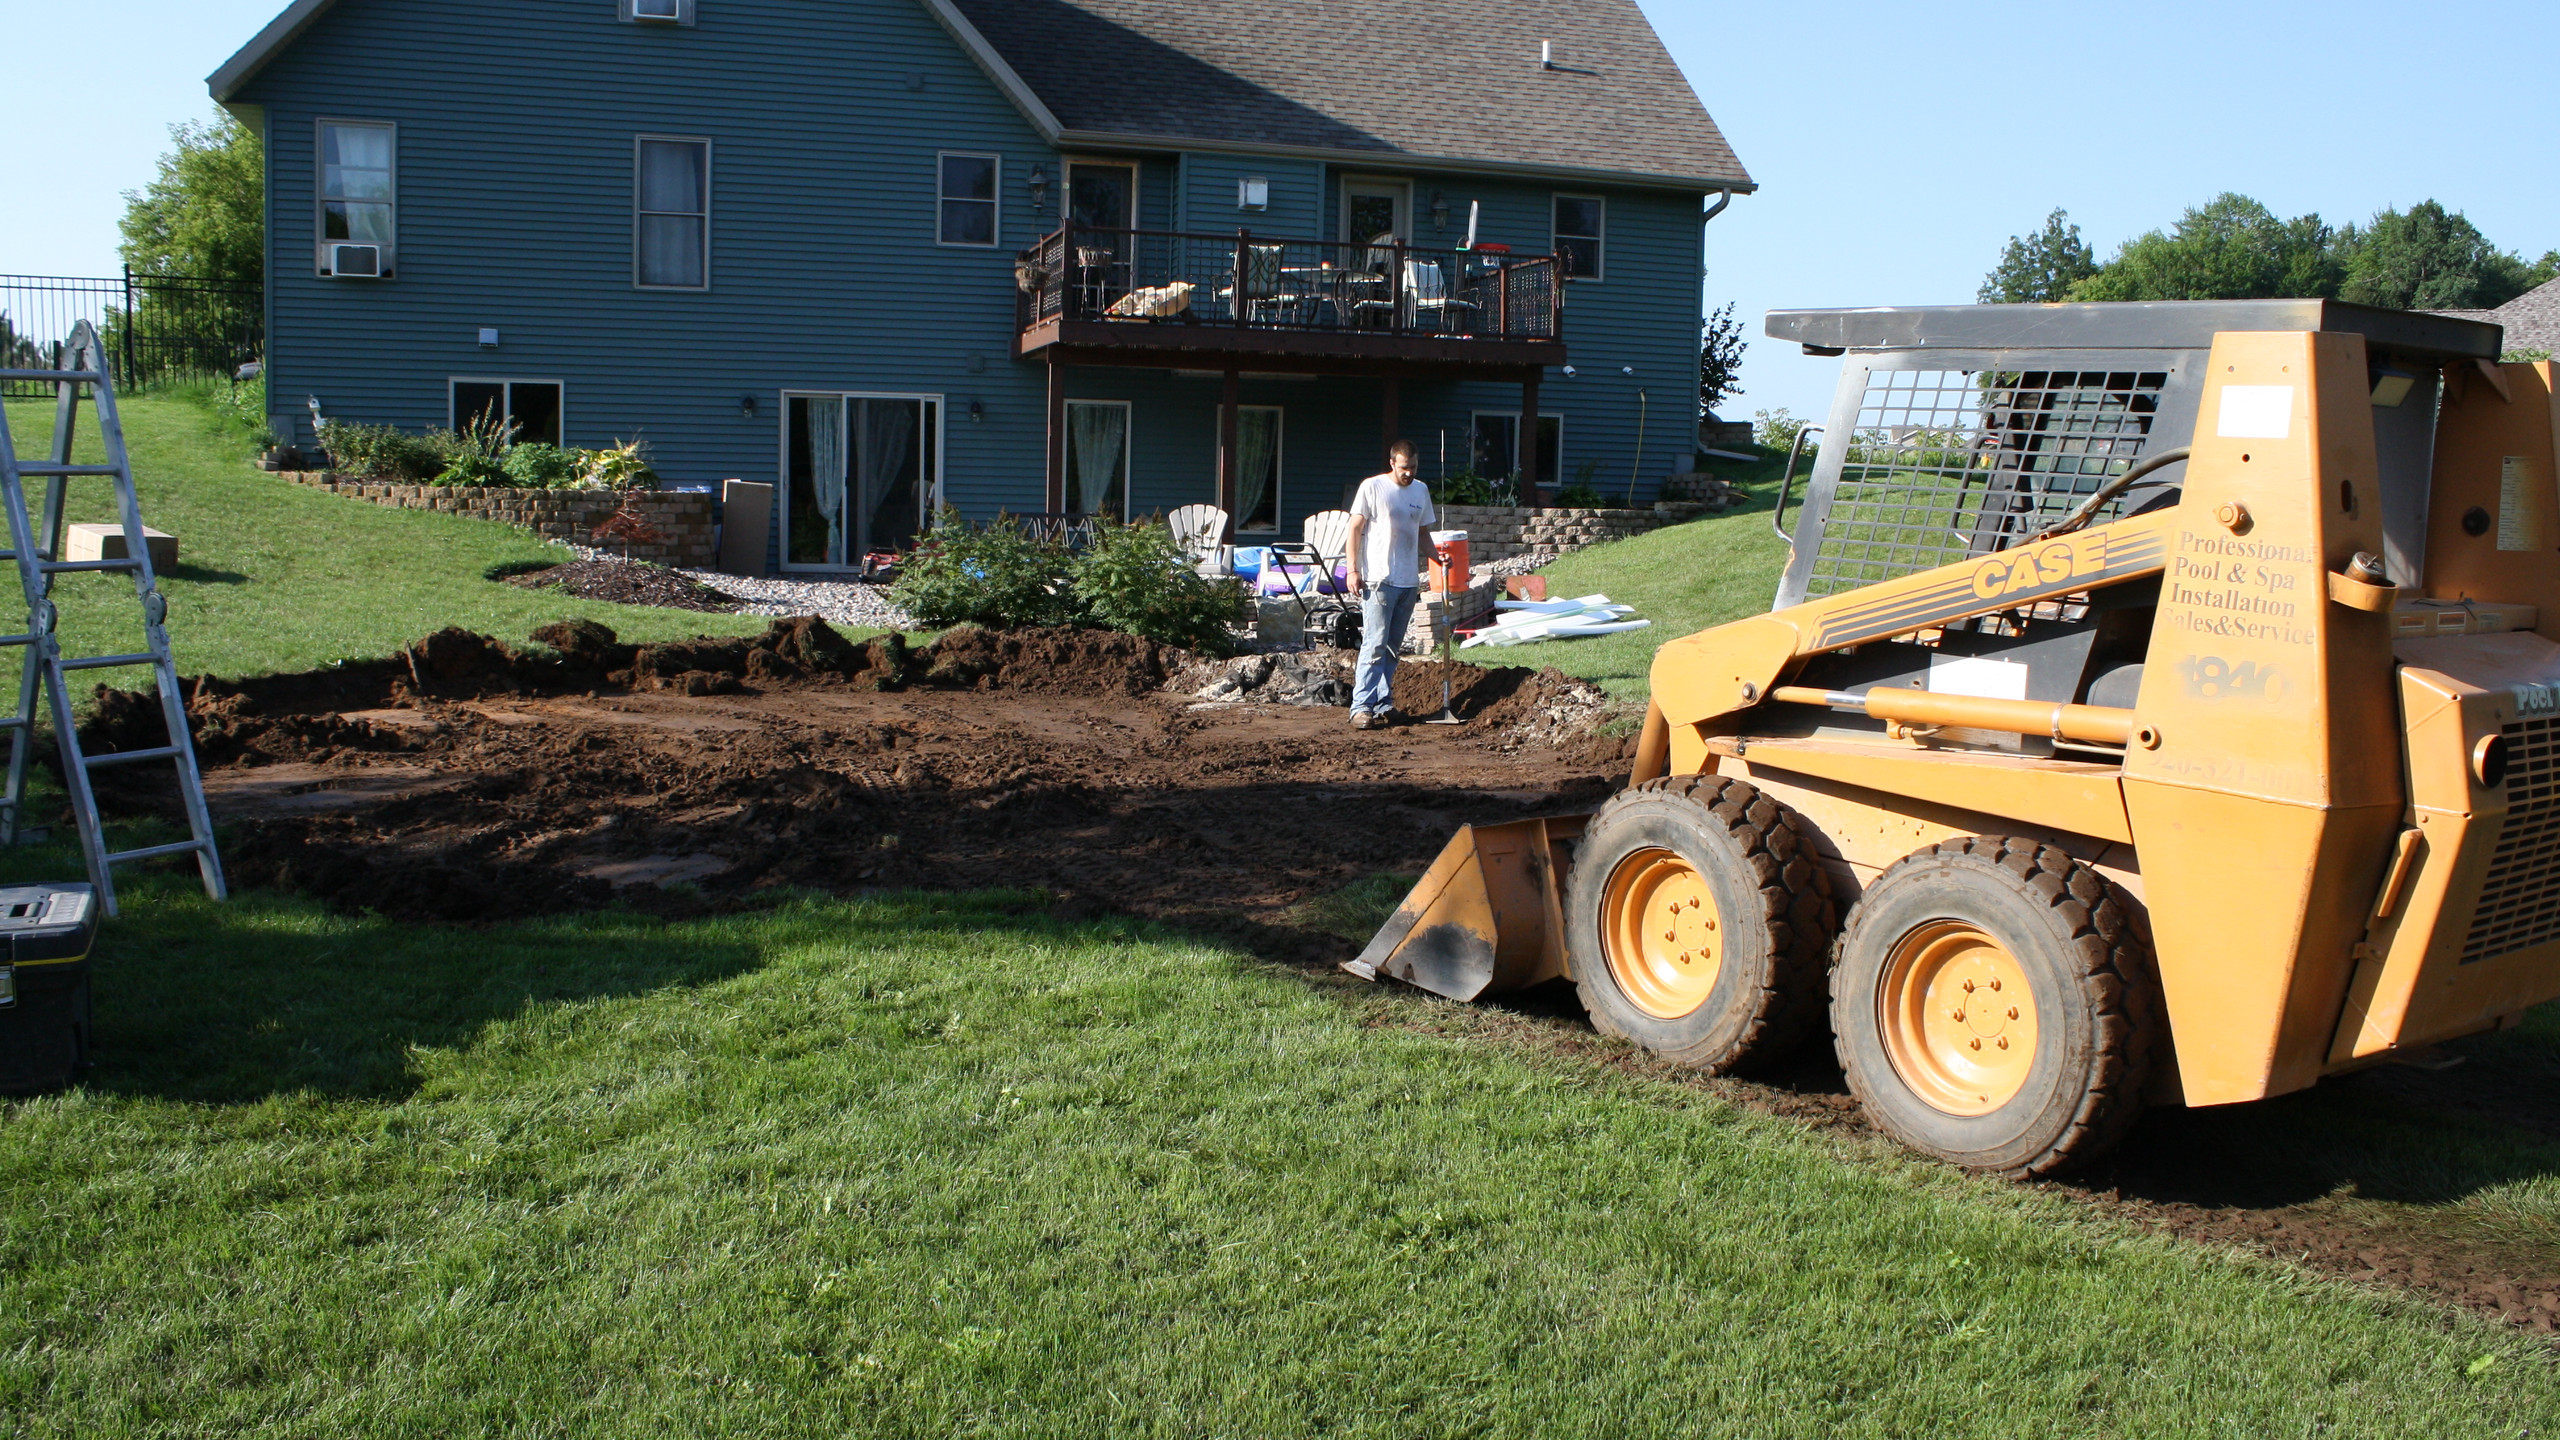 The next step is to begin the excavation of your above gorund pool. We mark out hte perimeter of the pool and use the lowest point on that perimeter as grade. This ensures your pool is on solid virgin ground. It takes longer but results in a solid foundation.